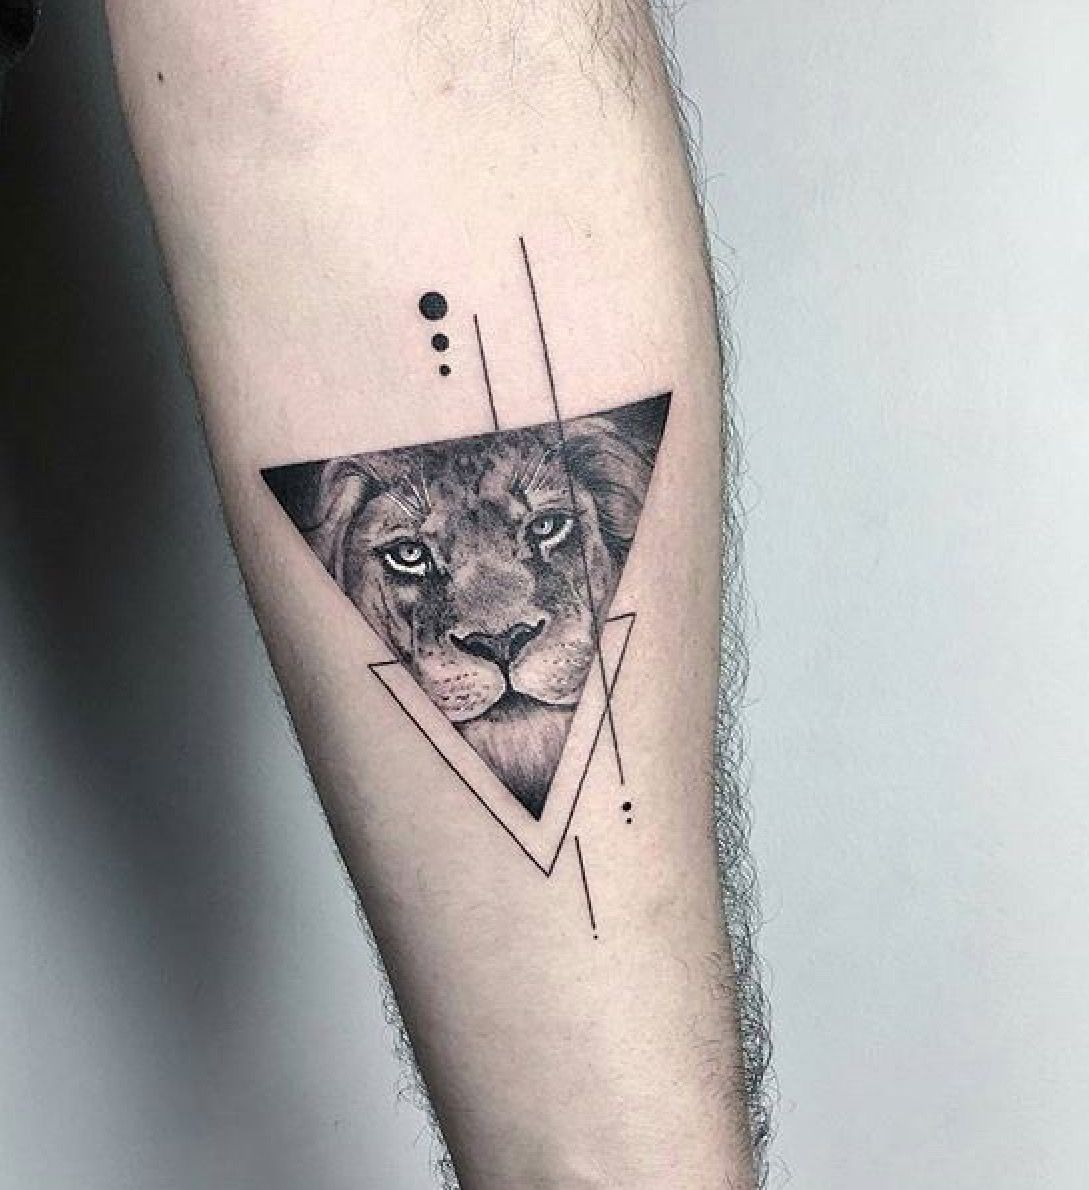 love triangles  lines  dots  overlapping triangles  hexagons  lion      love triangles  lines  dots  overlapping triangles  hexagons  lion in a  triangle